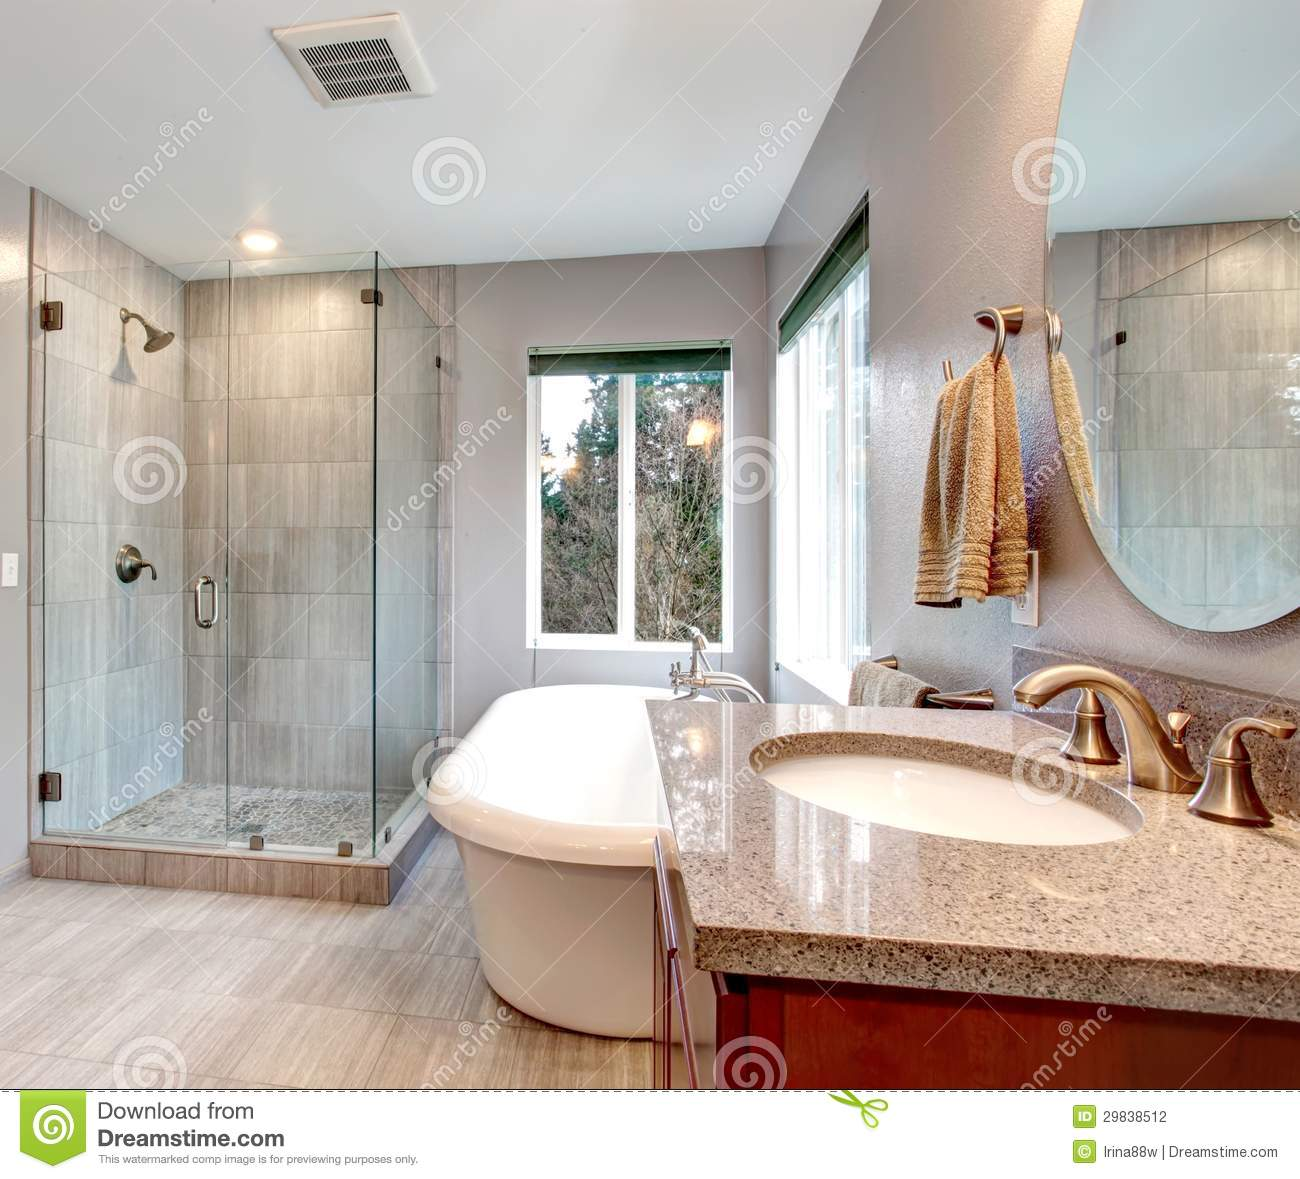 Cuartos De Baño Con Tina:Beautiful Modern Grey Bathroom